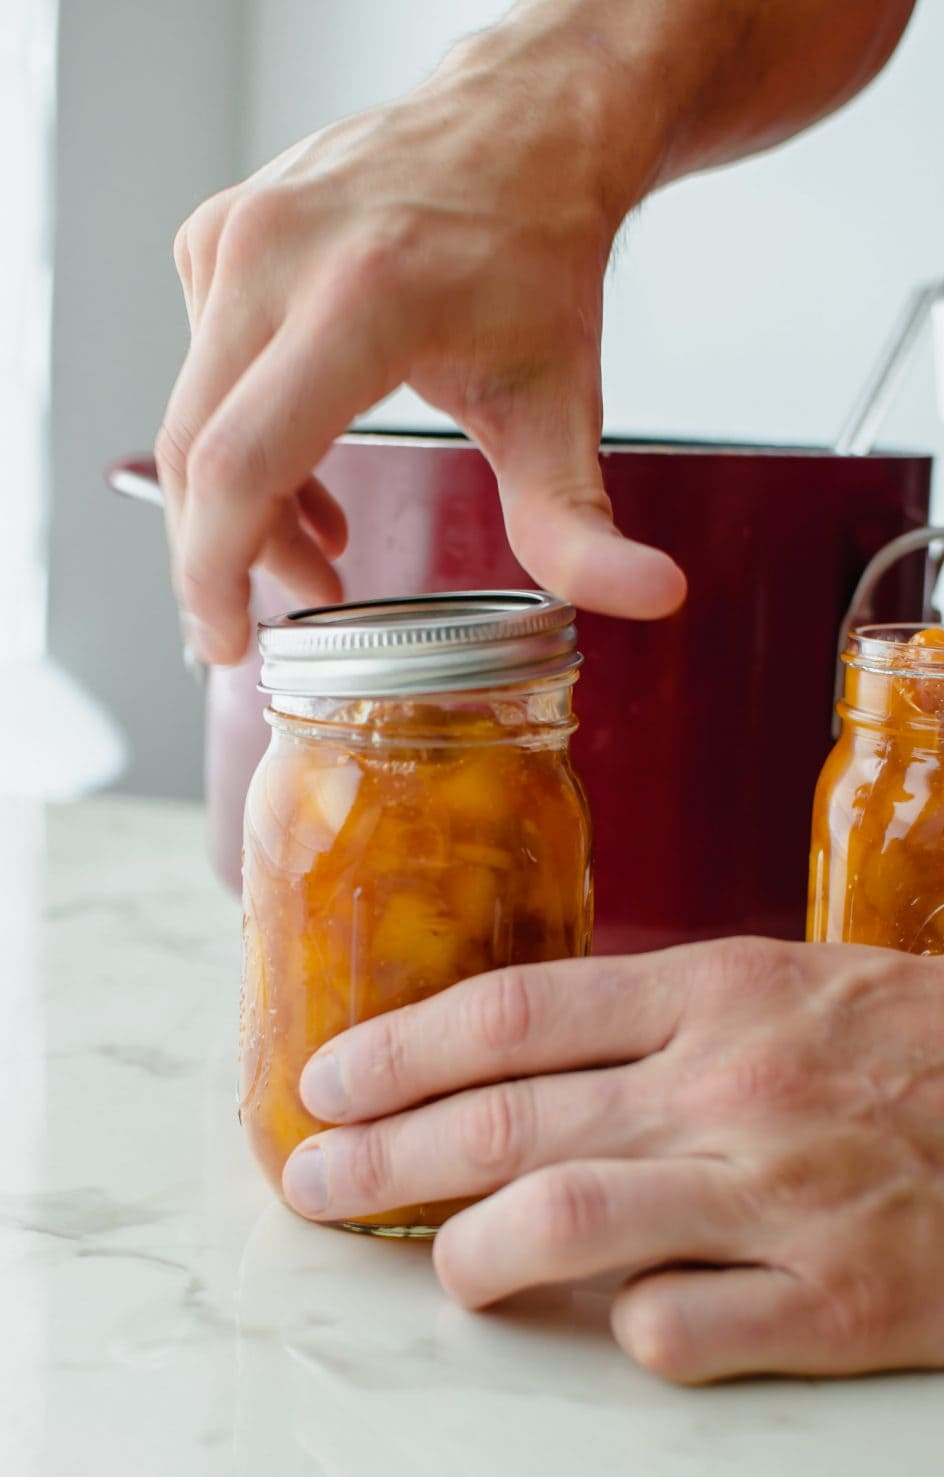 A pair of hands putting the lid on a canning jar filled with peach jam.